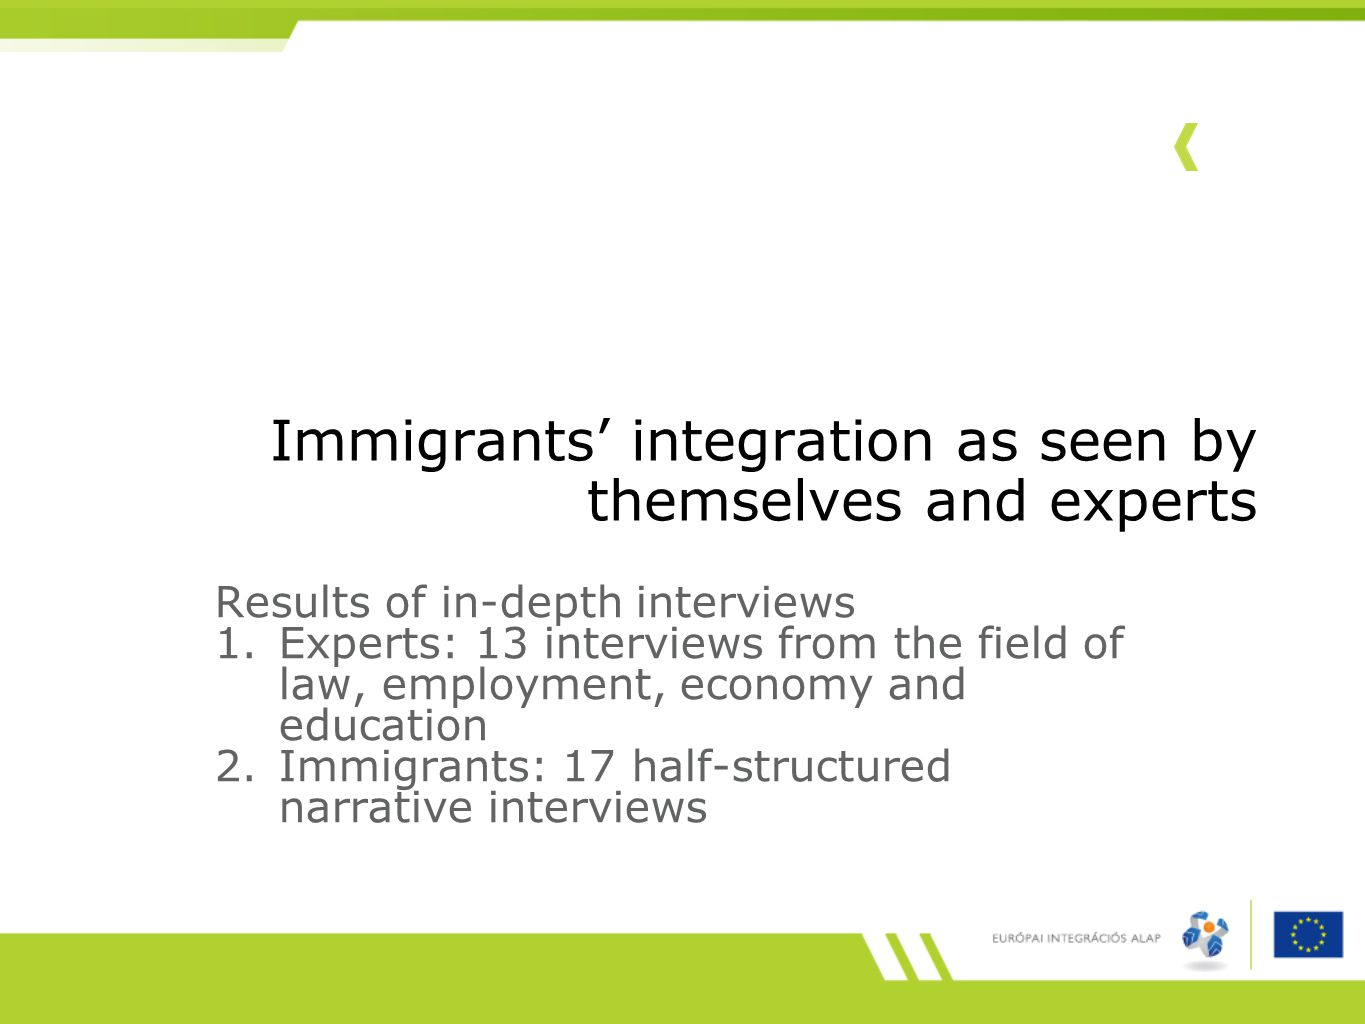 Immigrants' integration as seen by themselves and experts Results of in-depth interviews 1.Experts: 13 interviews from the field of law, employment, economy and education 2.Immigrants: 17 half-structured narrative interviews